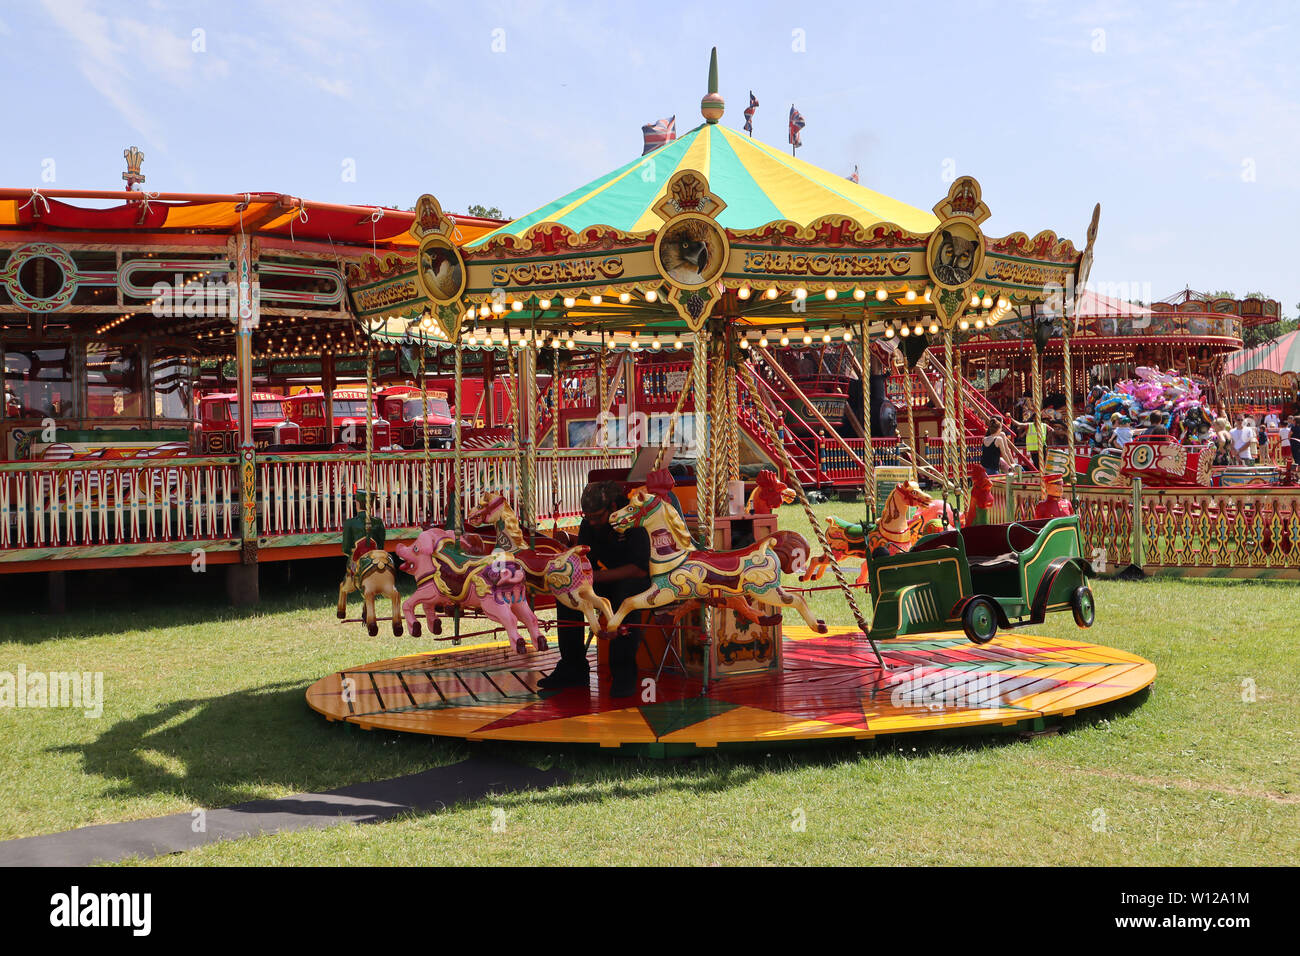 Carters Steam Fair Peckham Rye Common London Uk 29 June 2019